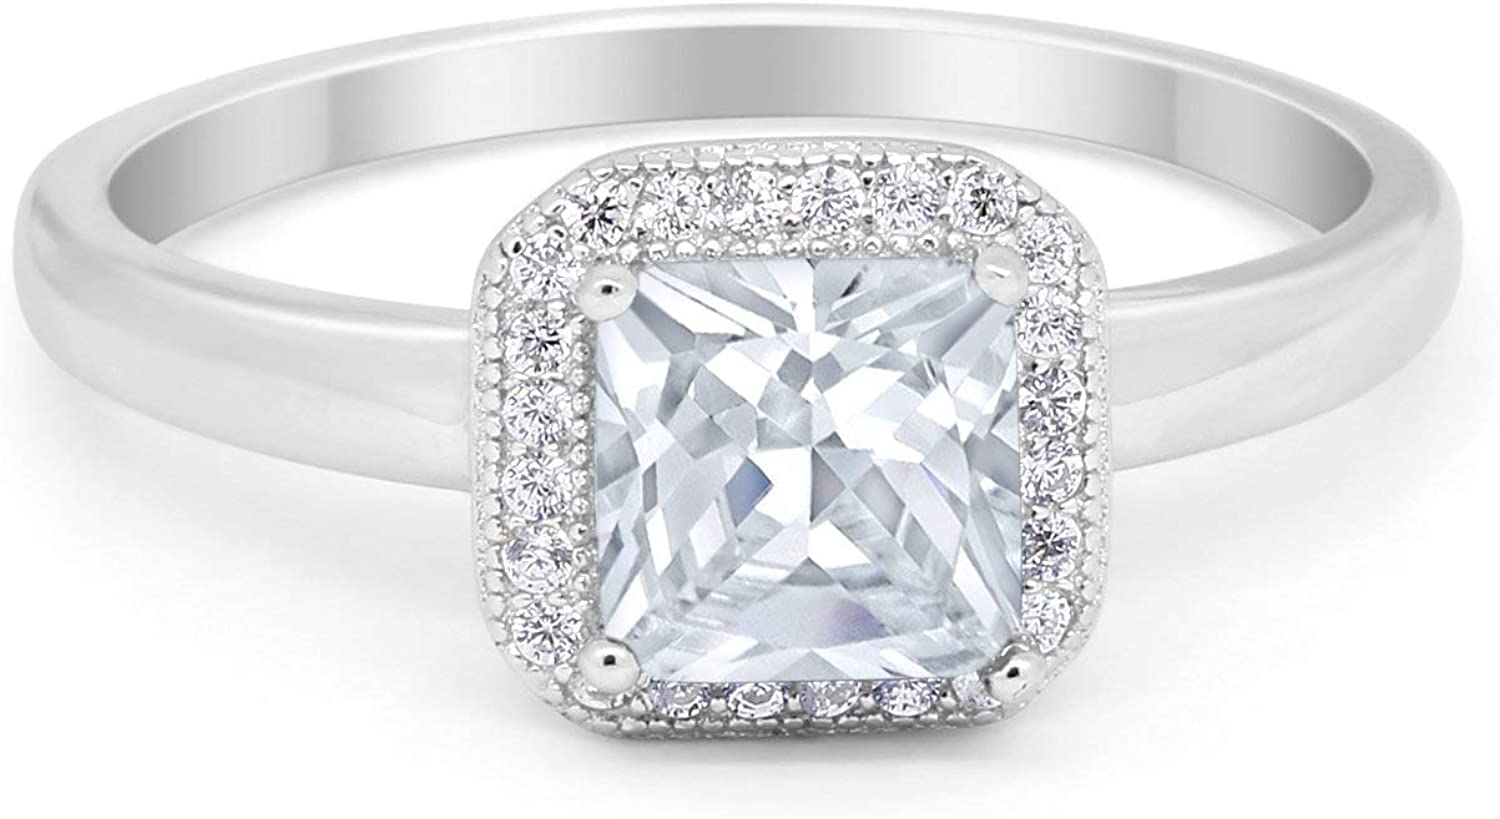 Blue Apple Co. New sales Halo Wedding Cut Engagement Max 50% OFF Princess Ring Square